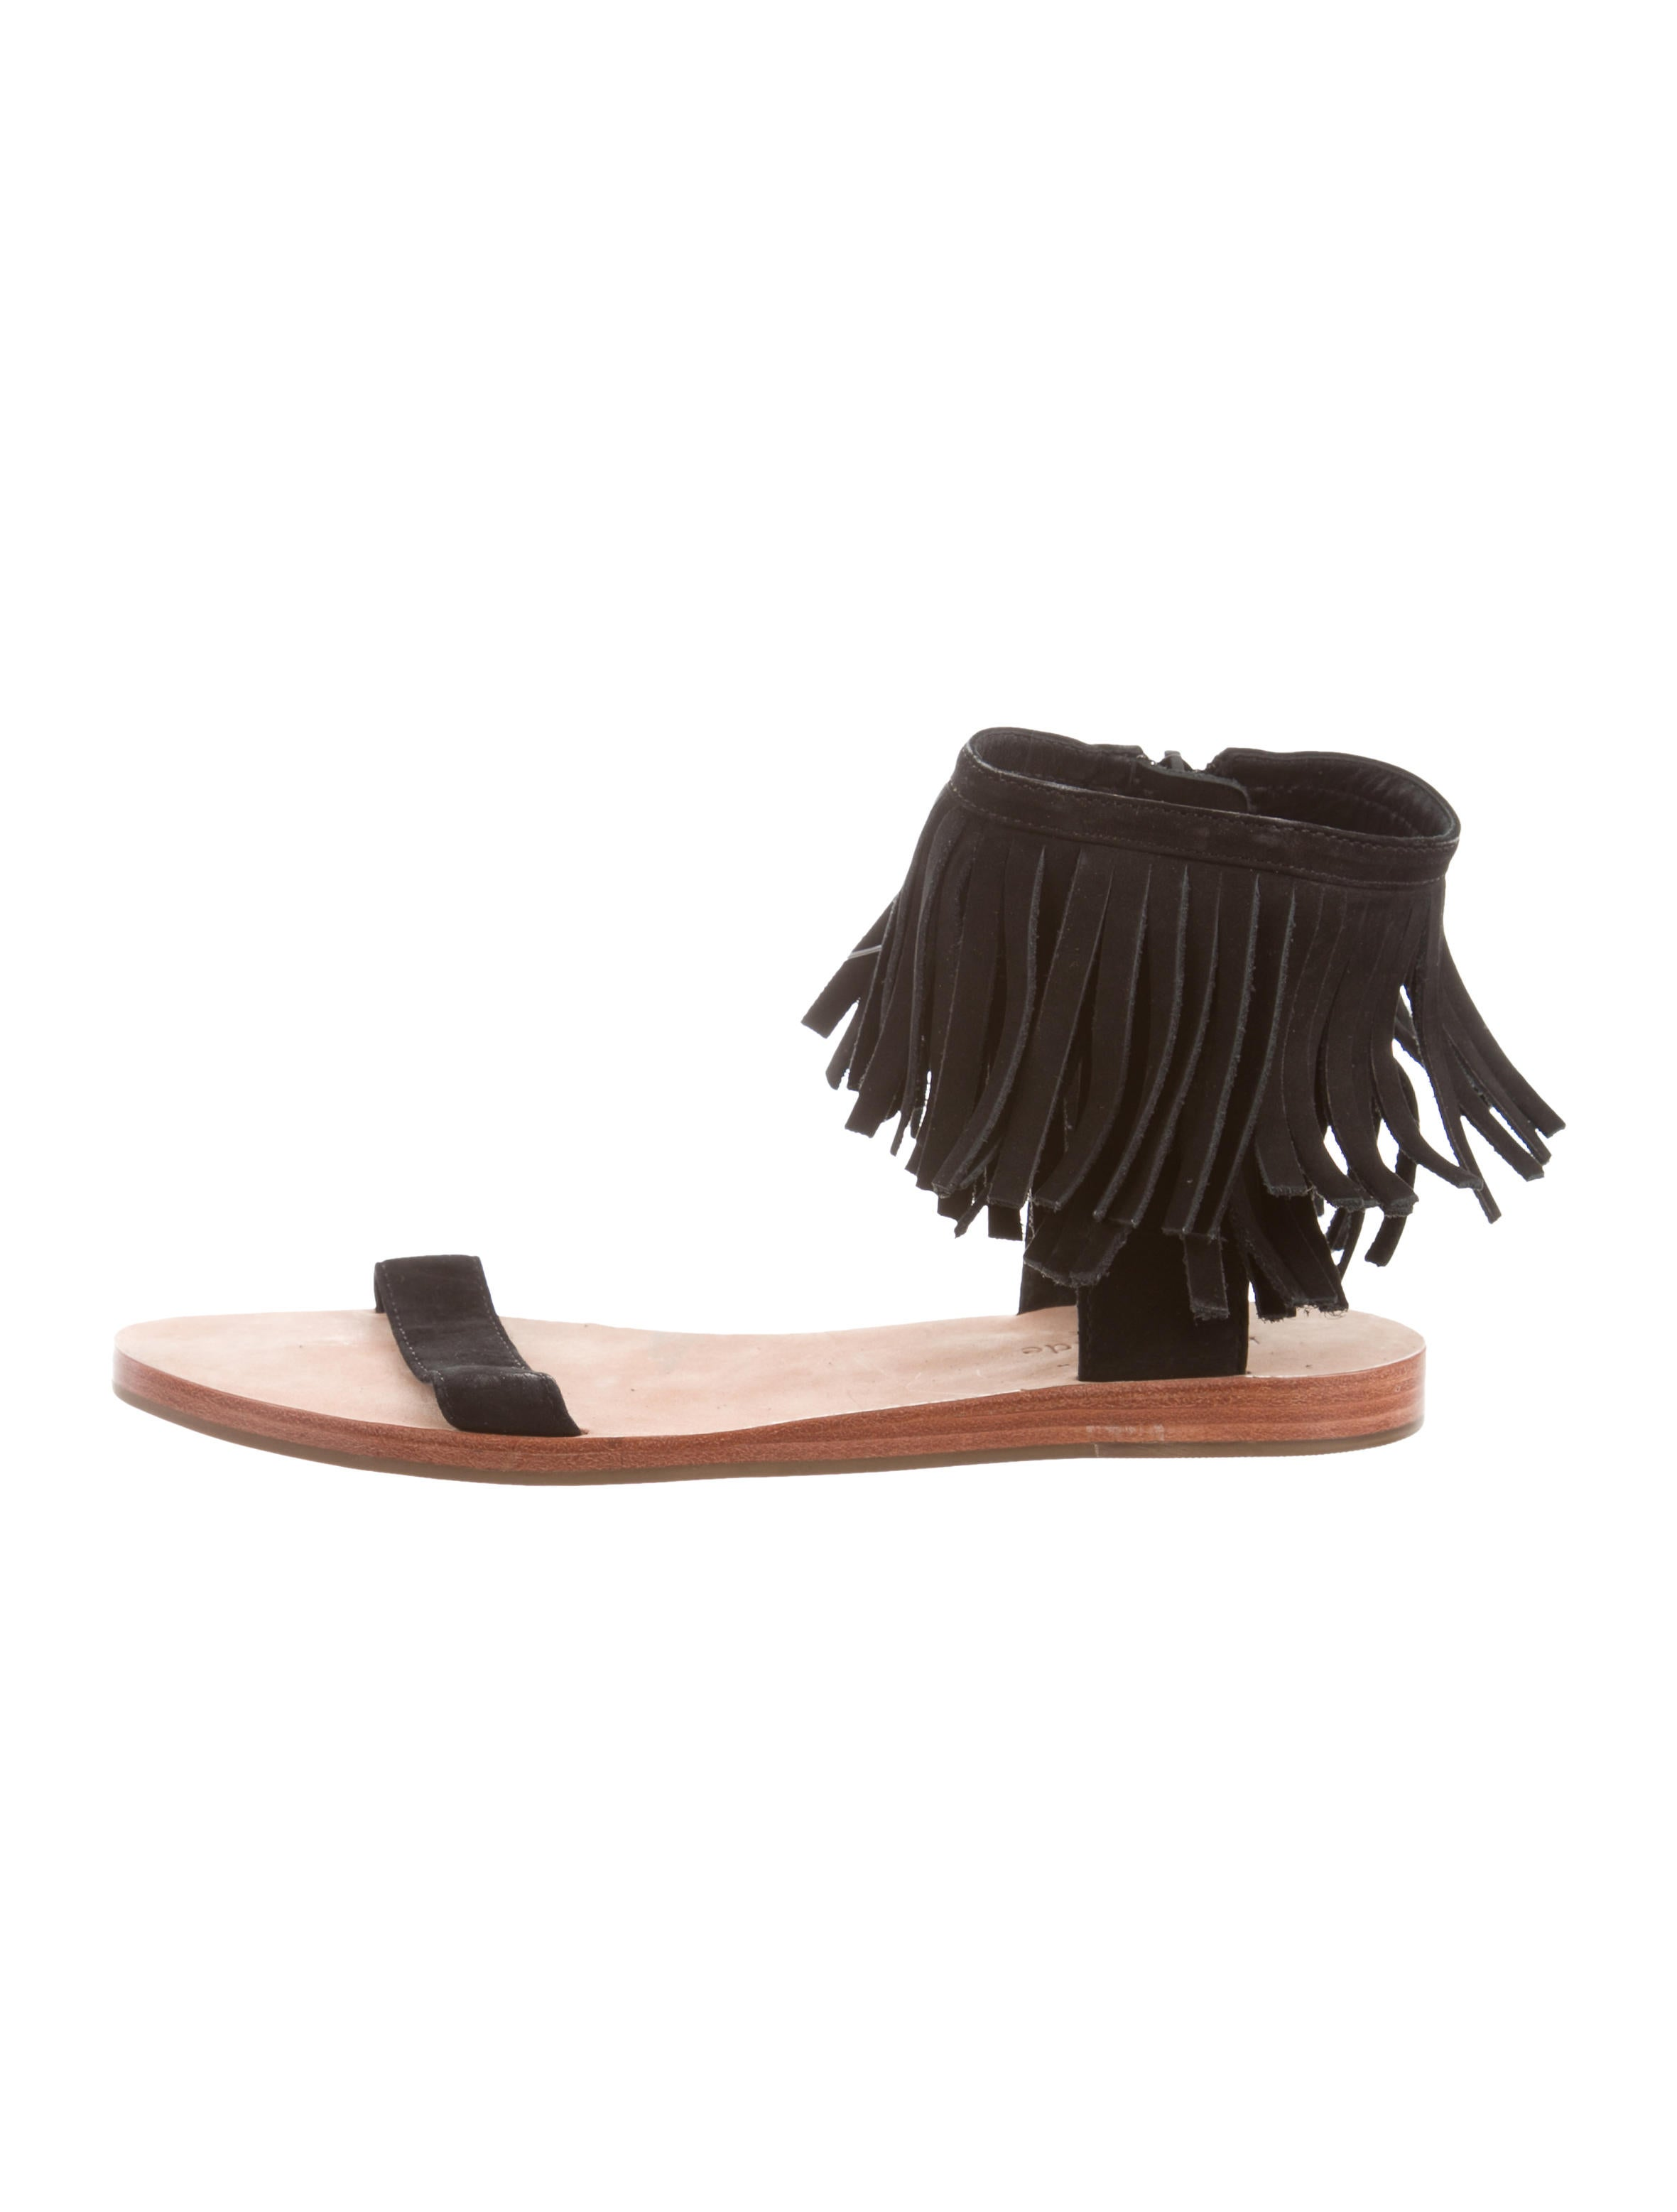 79eeafa1149f Women · Shoes  Kate Spade New York Halle Fringe Sandals. Halle Fringe  Sandals